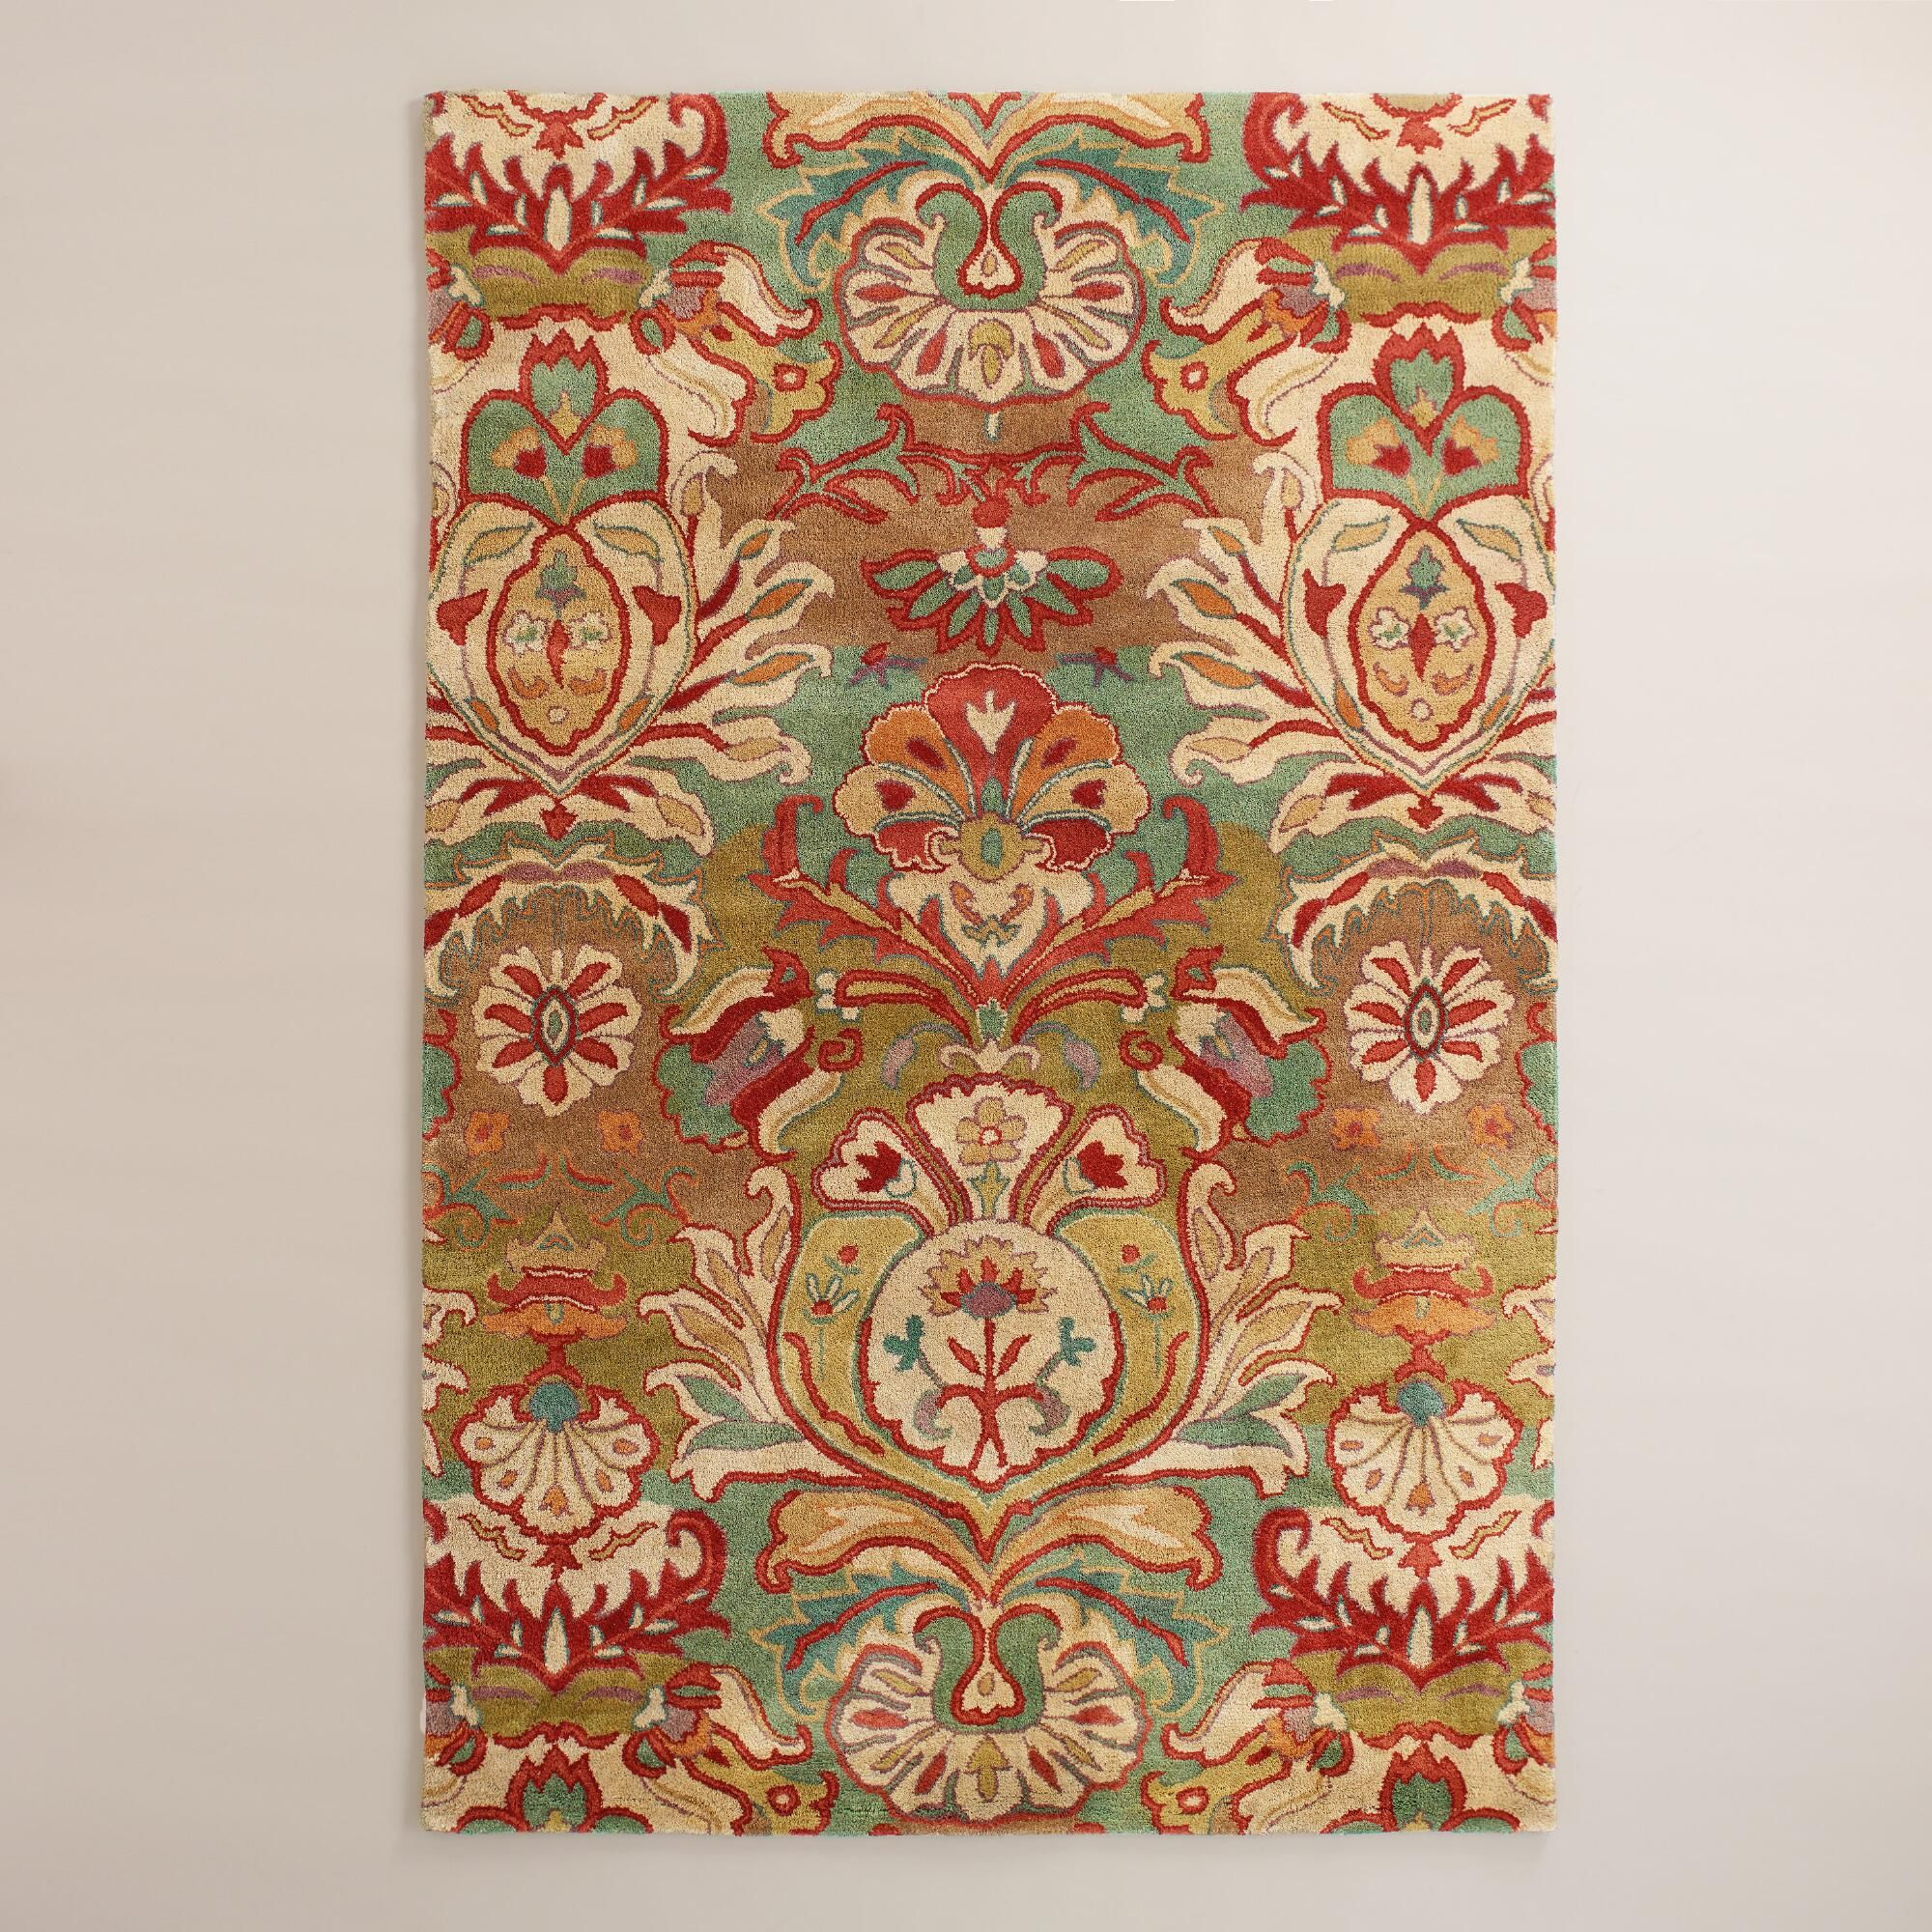 Hand Tufted In India Of 100 Wool Pile This High Quality Rug Features A Fl Medallion Motif Designed Exclusively For World Market